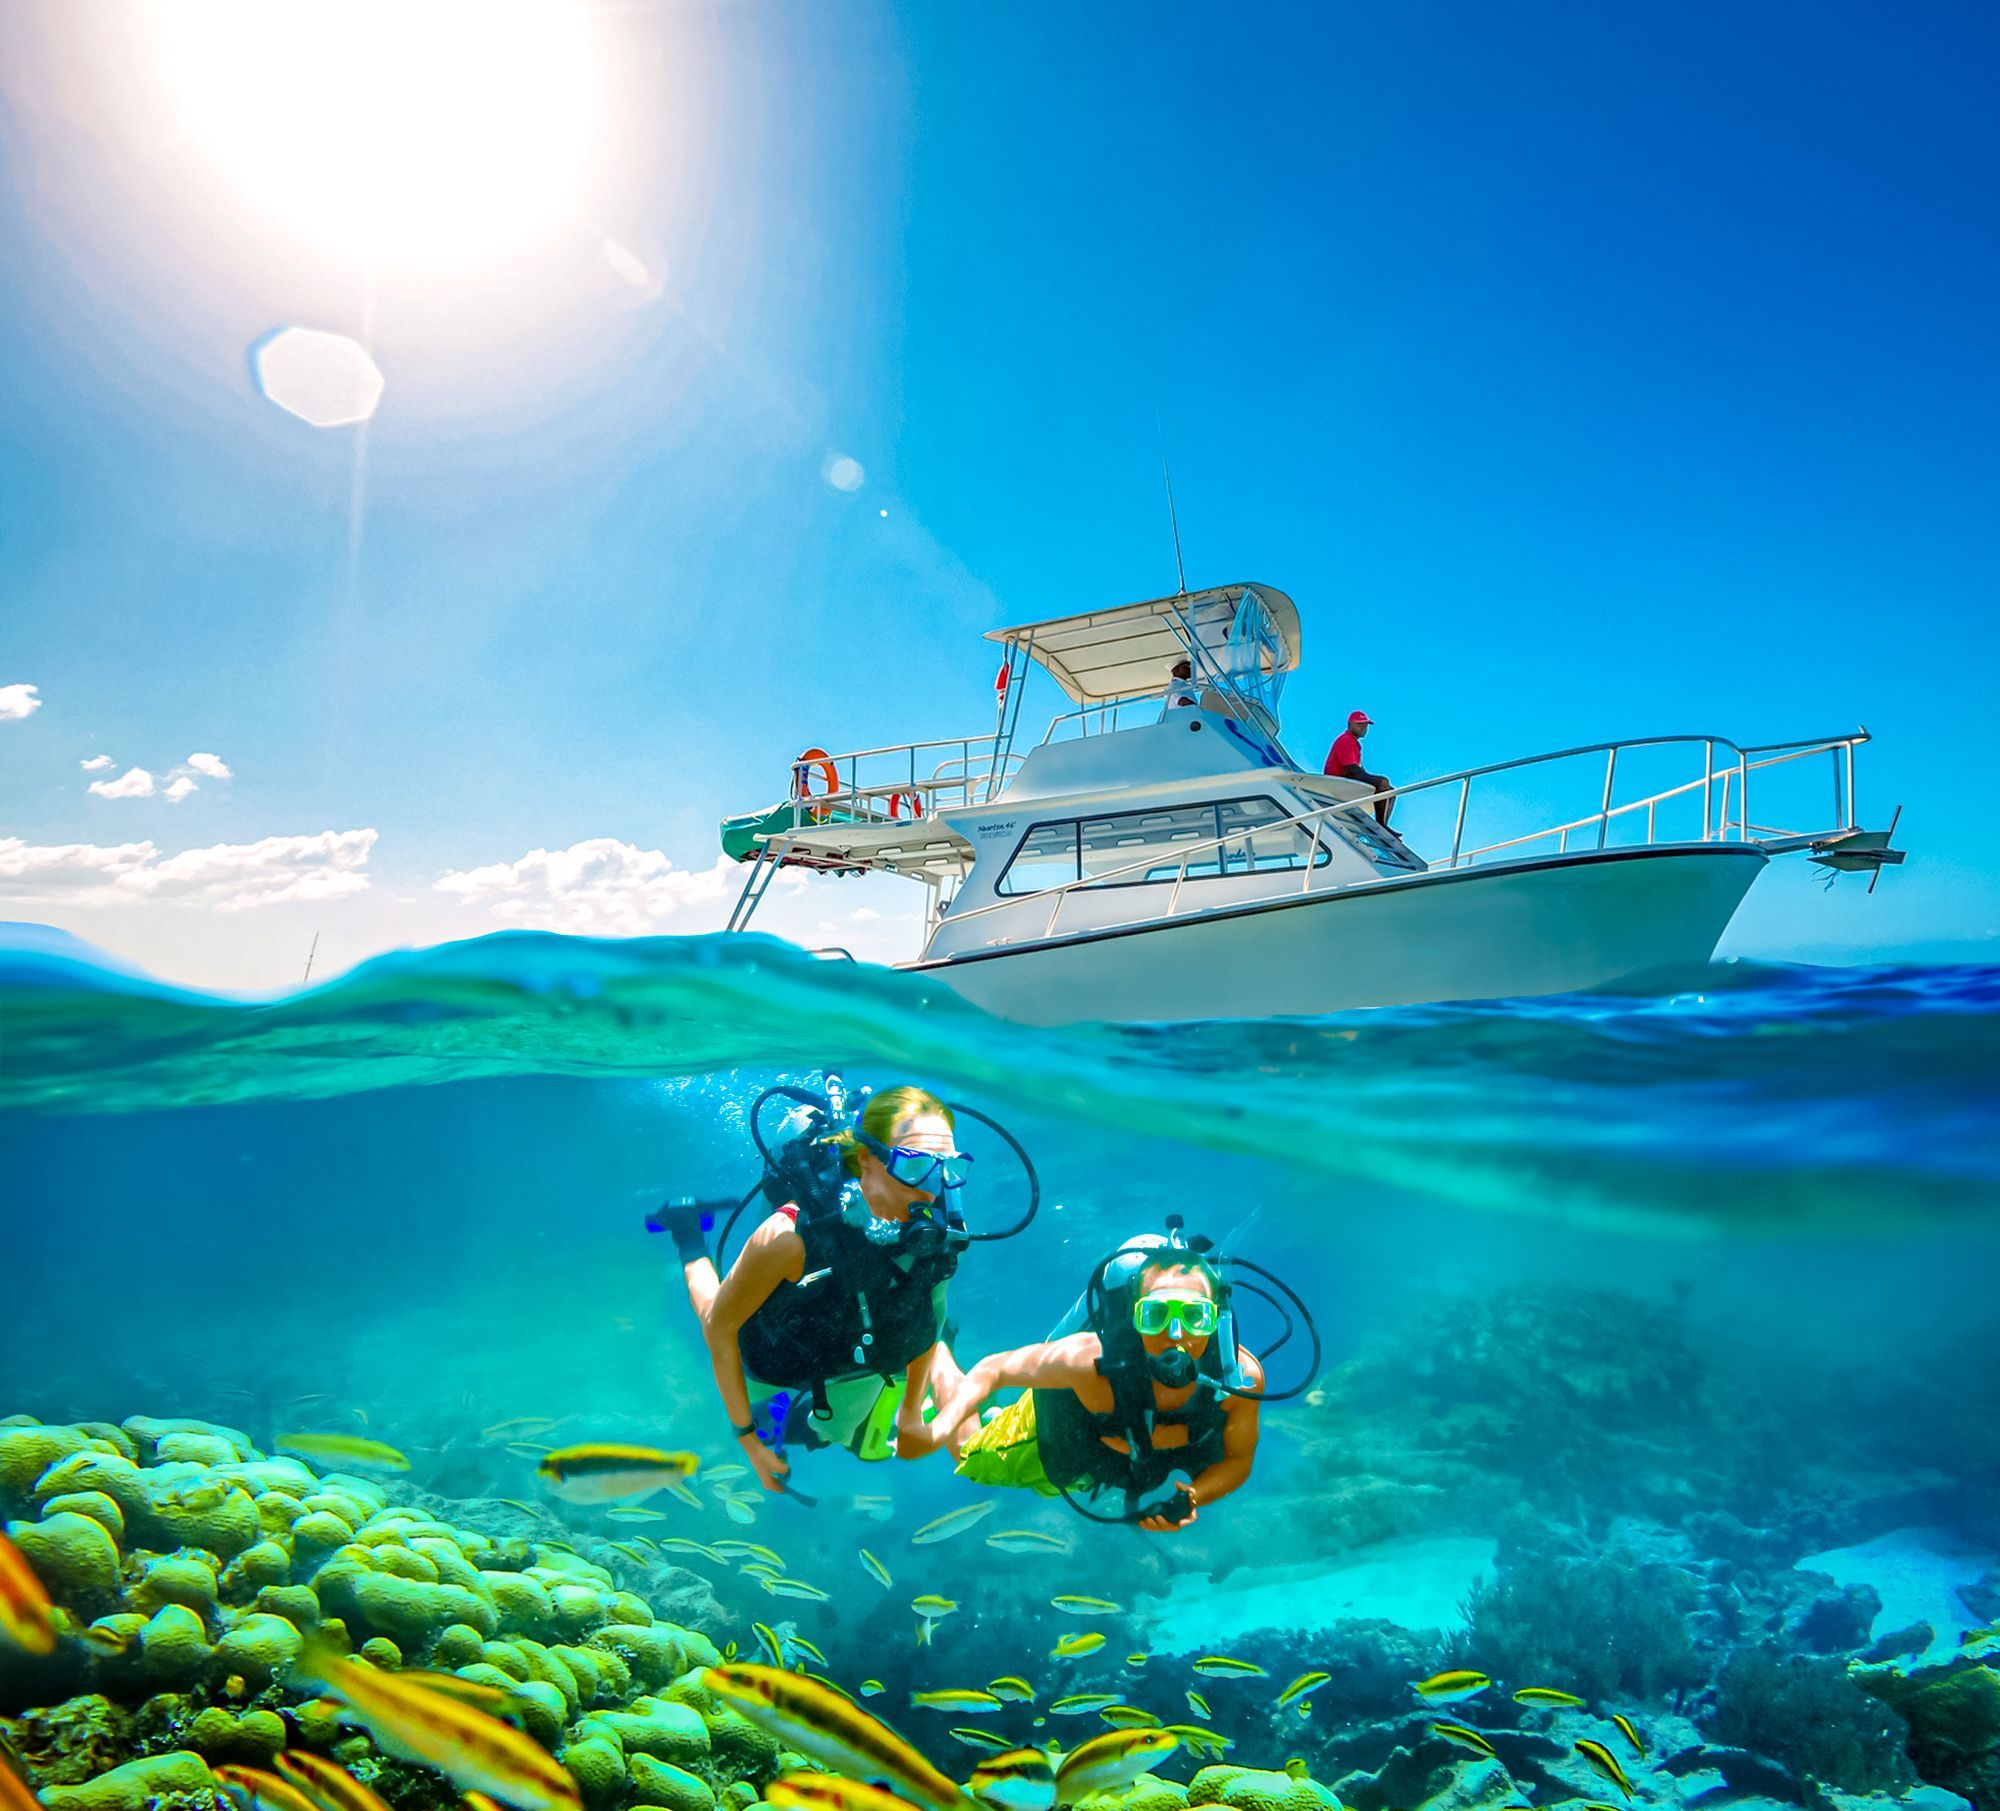 Scuba Diving In The Bahamas: What To Expect